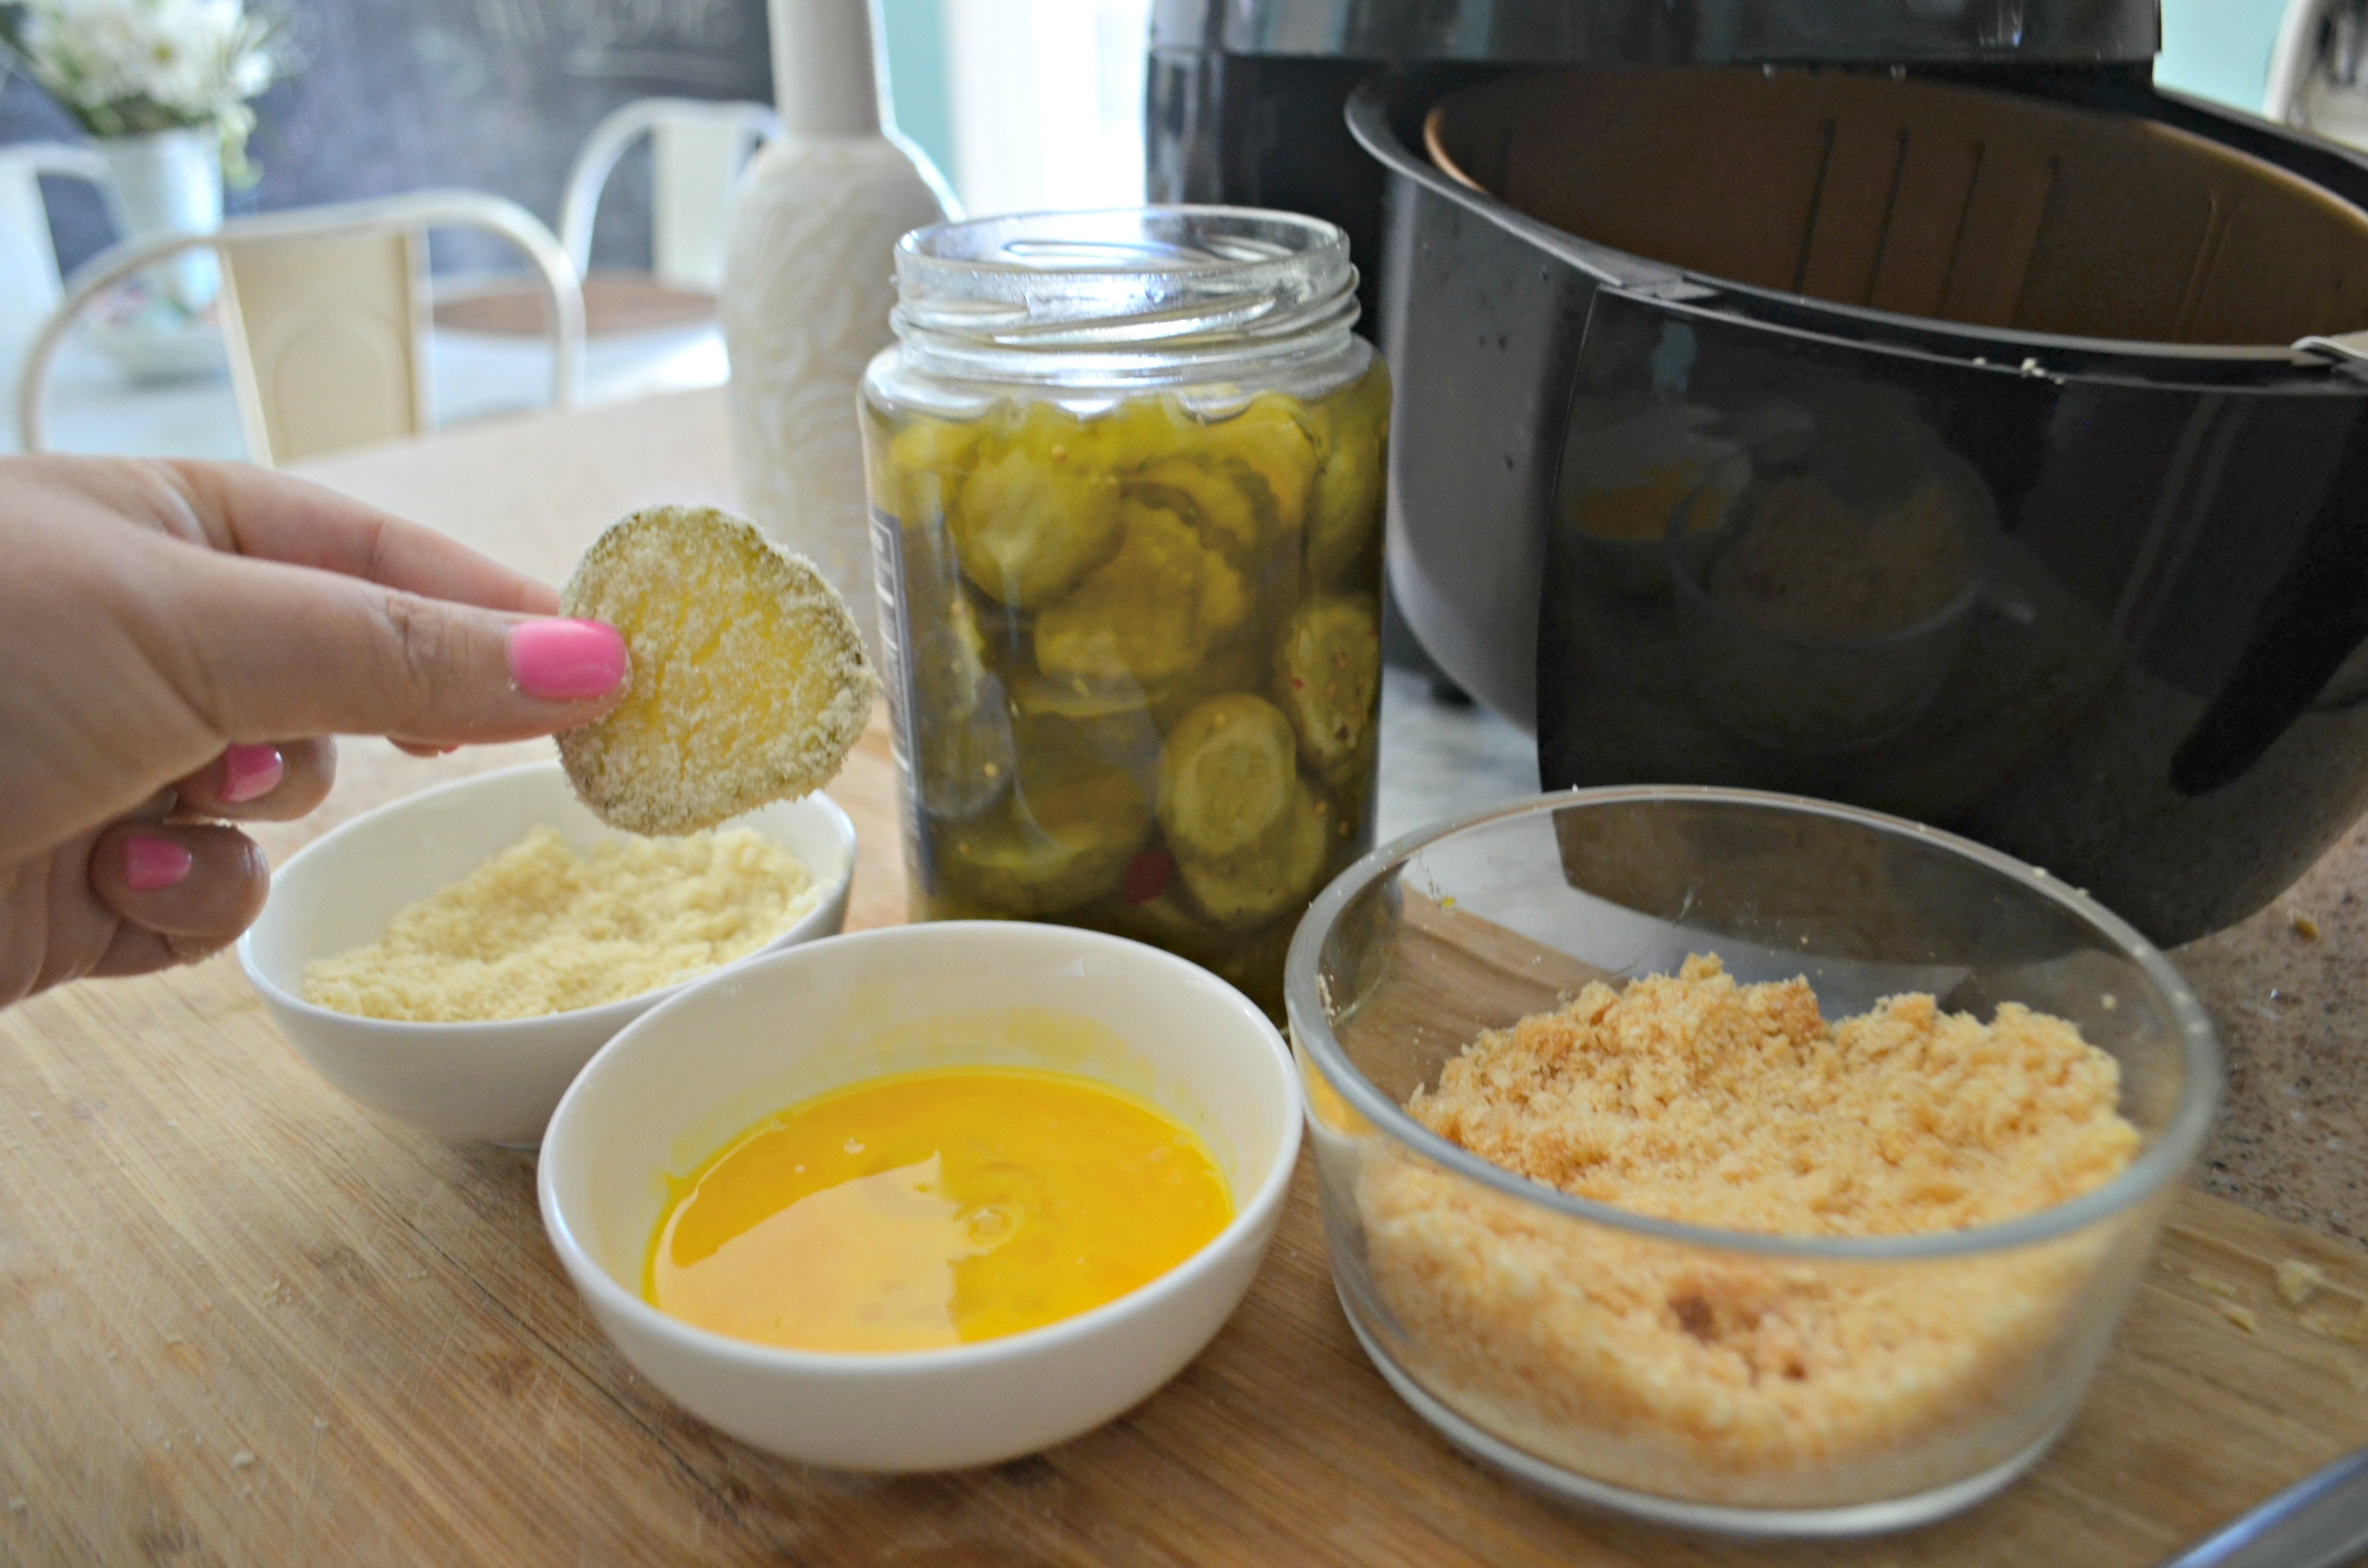 Dredge pickle slices and air fry for an easy appetizer everyone will love.